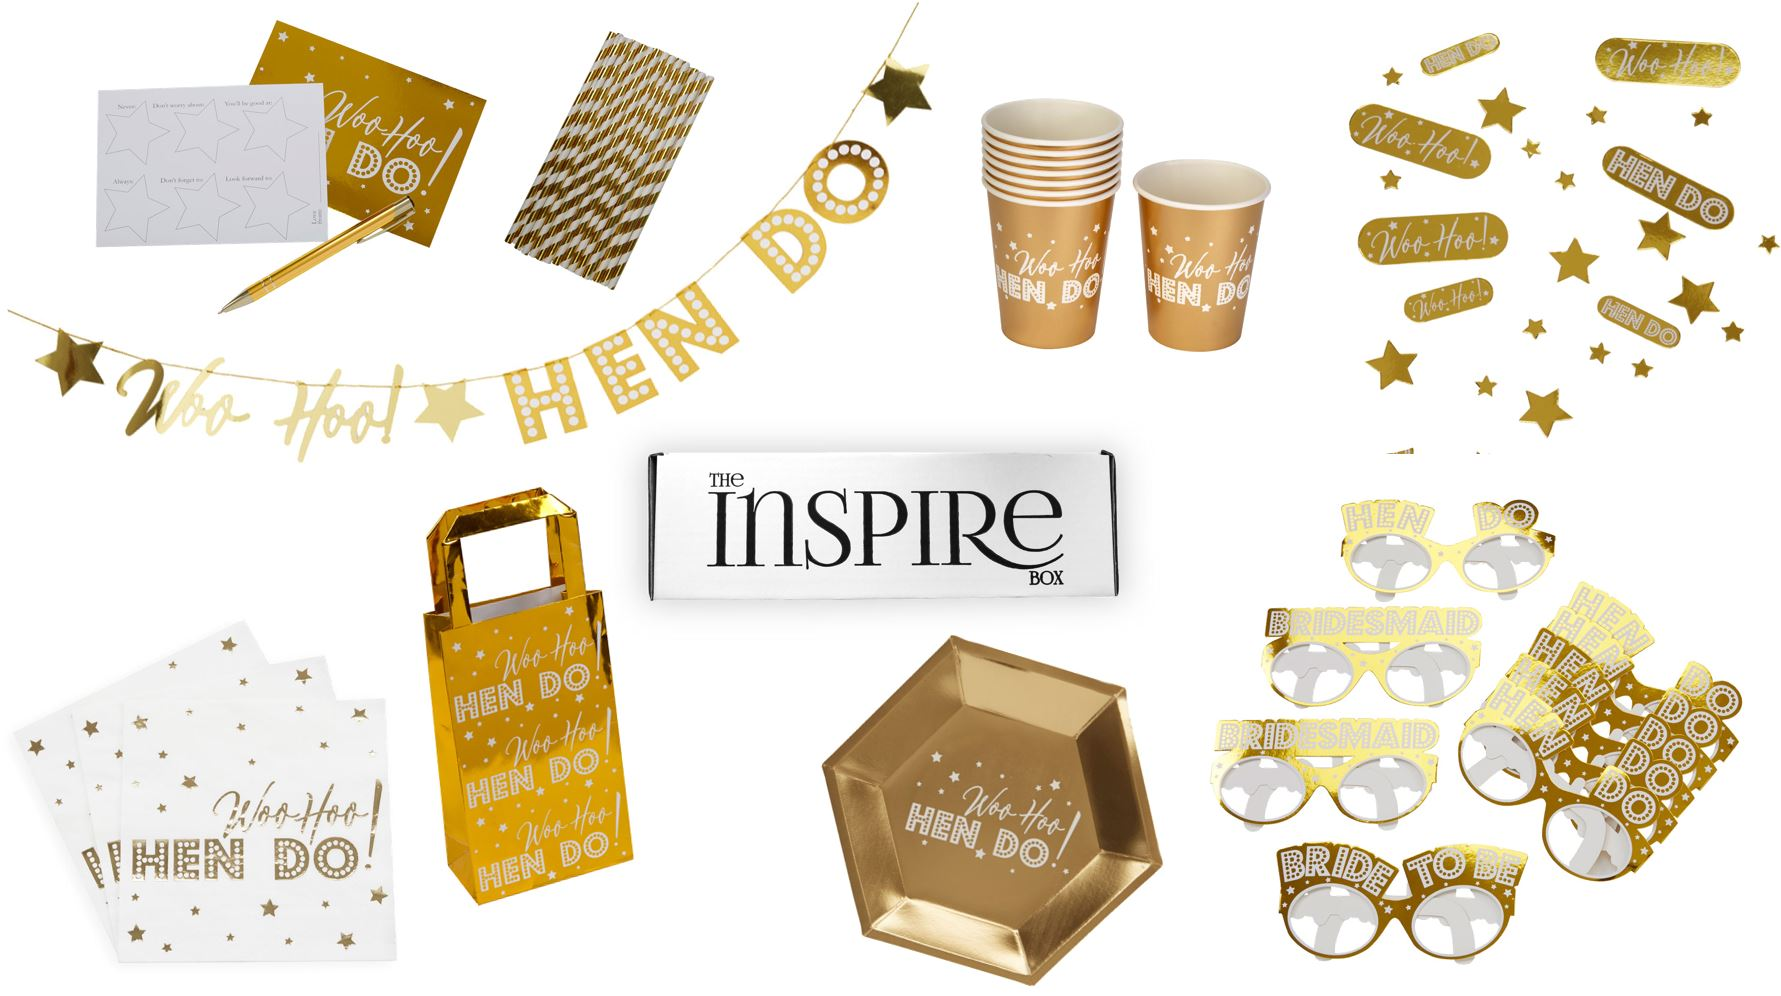 June's box was designed to prepare you for the hen party! filled with gold party supplies and decor.